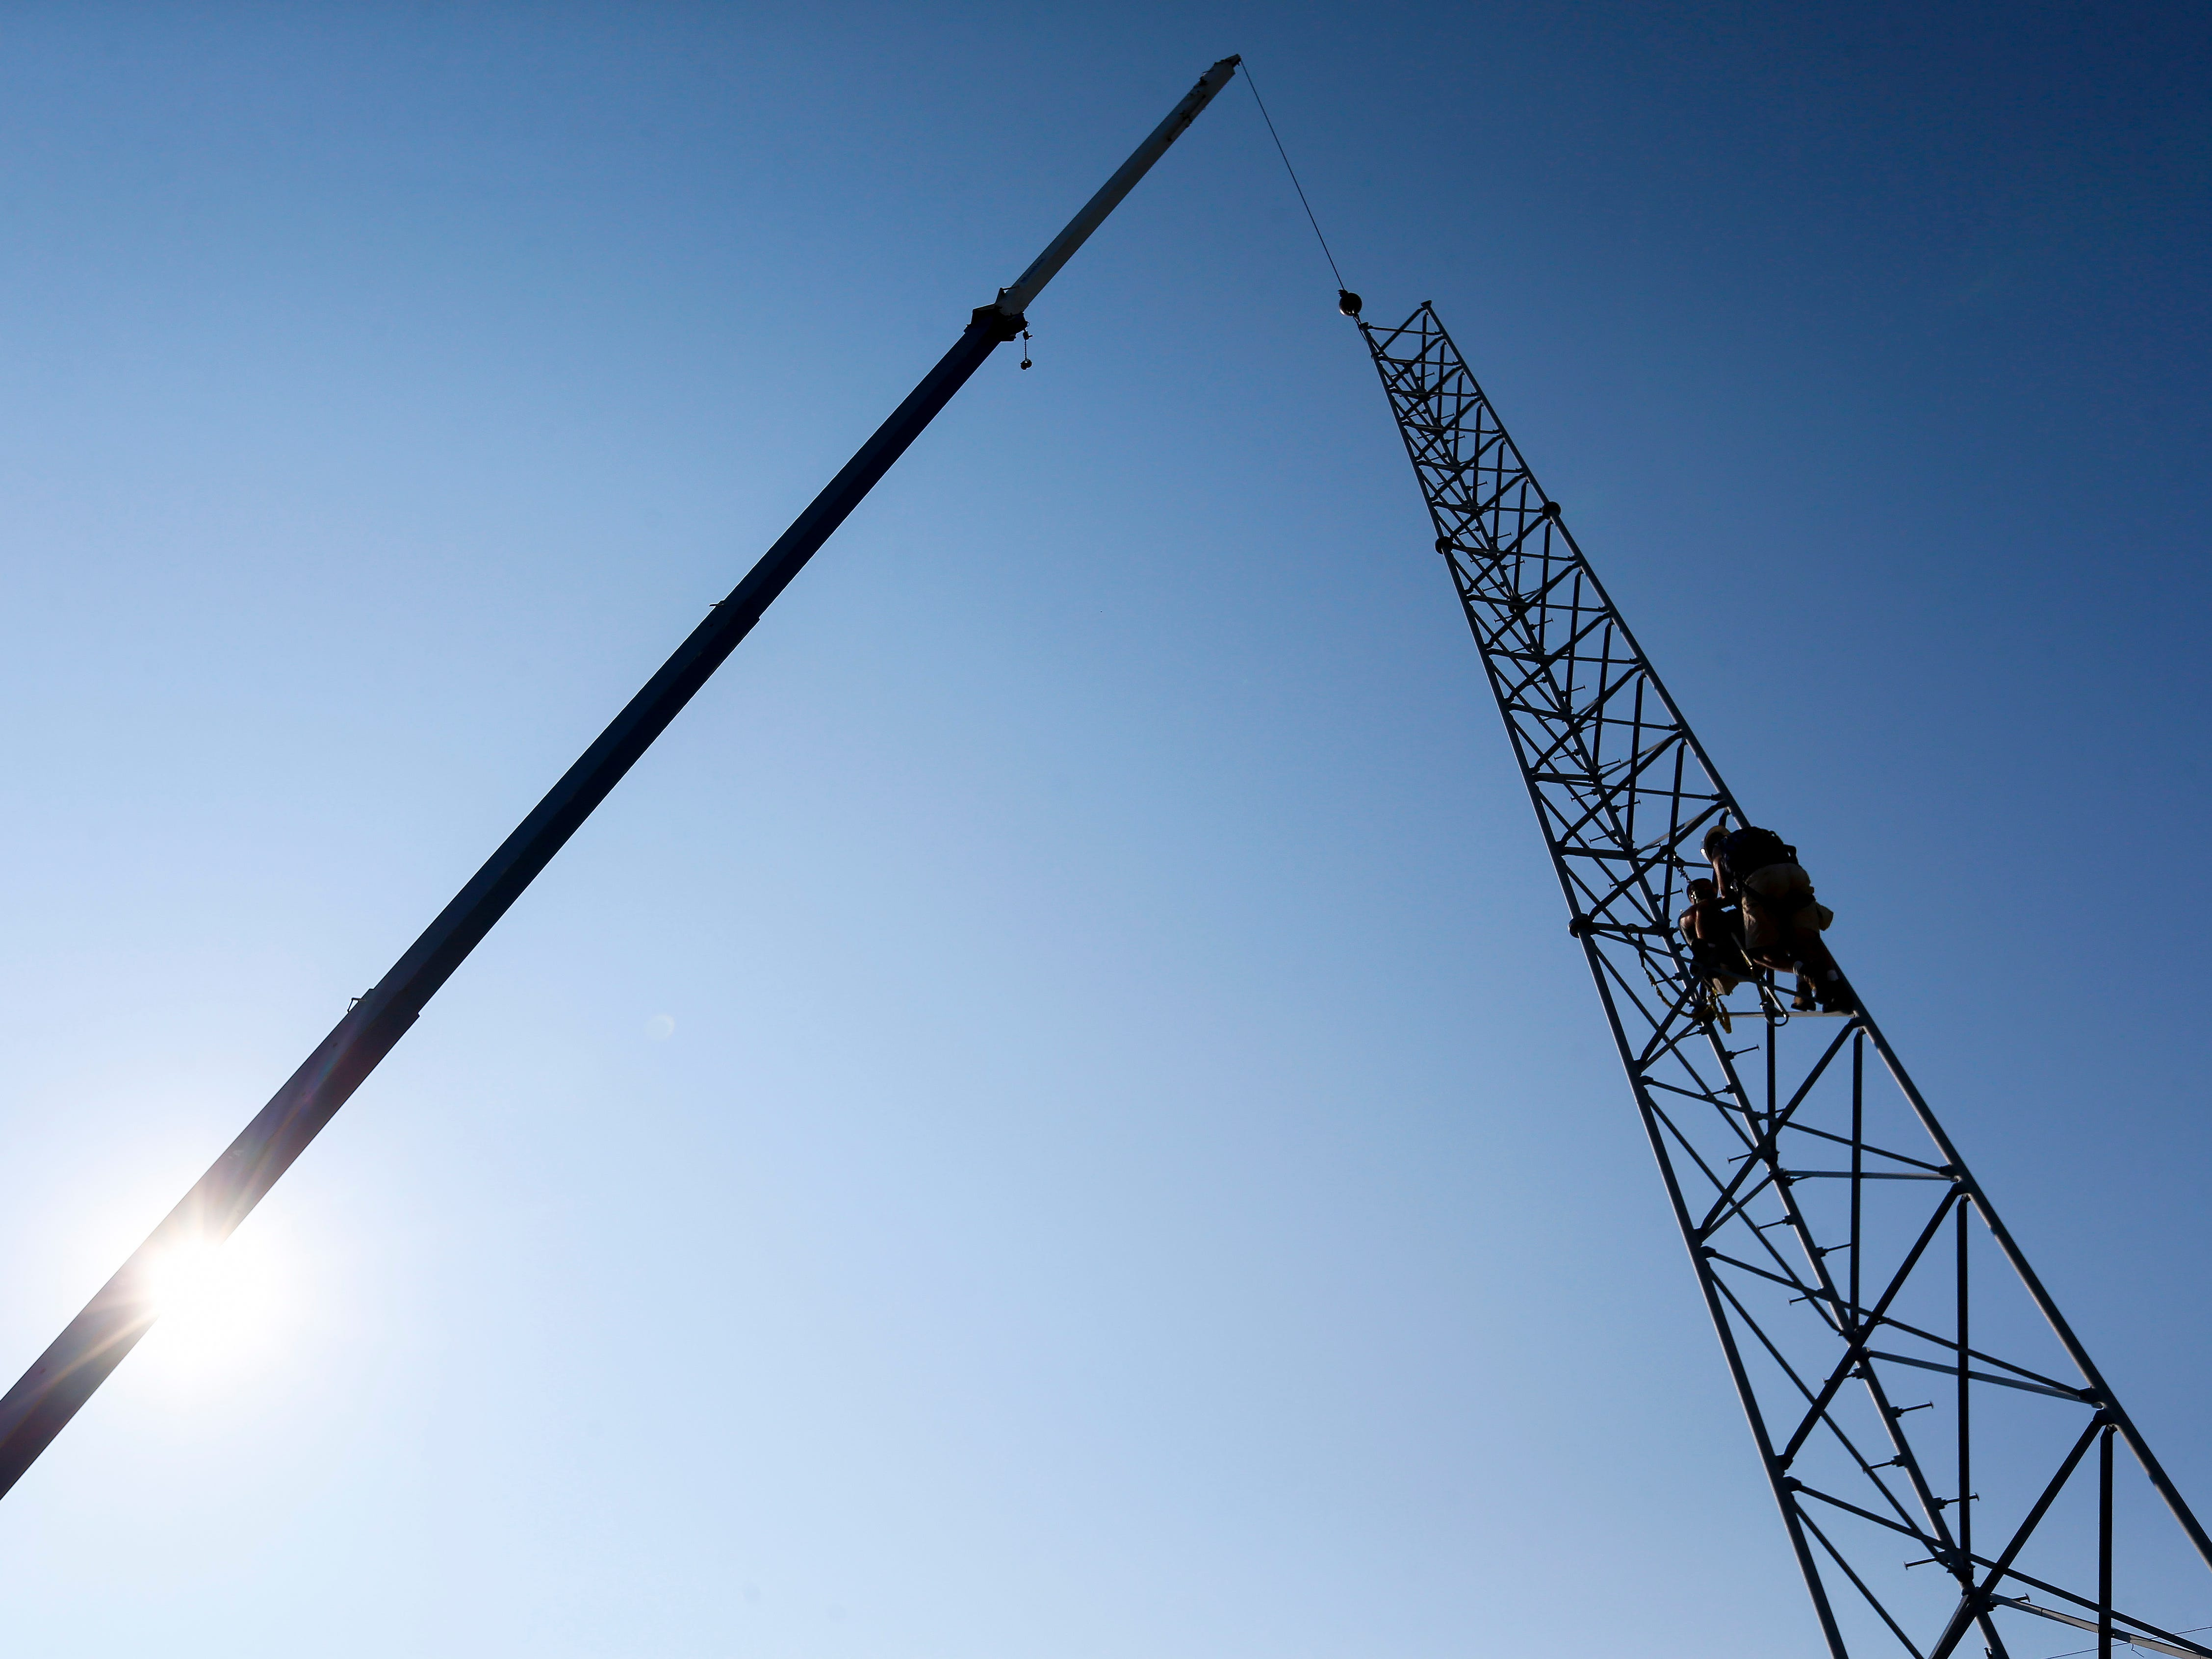 Craig House, left, and Tim Sloan, both of DIY Broadband, disassemble an old pager tower on Thursday, Sep. 20, 2018. The tower was located on property just purchased by Arnie's Plumbing, Heating and Air Services near the intersection of Chase Street and Lyon Avenue.